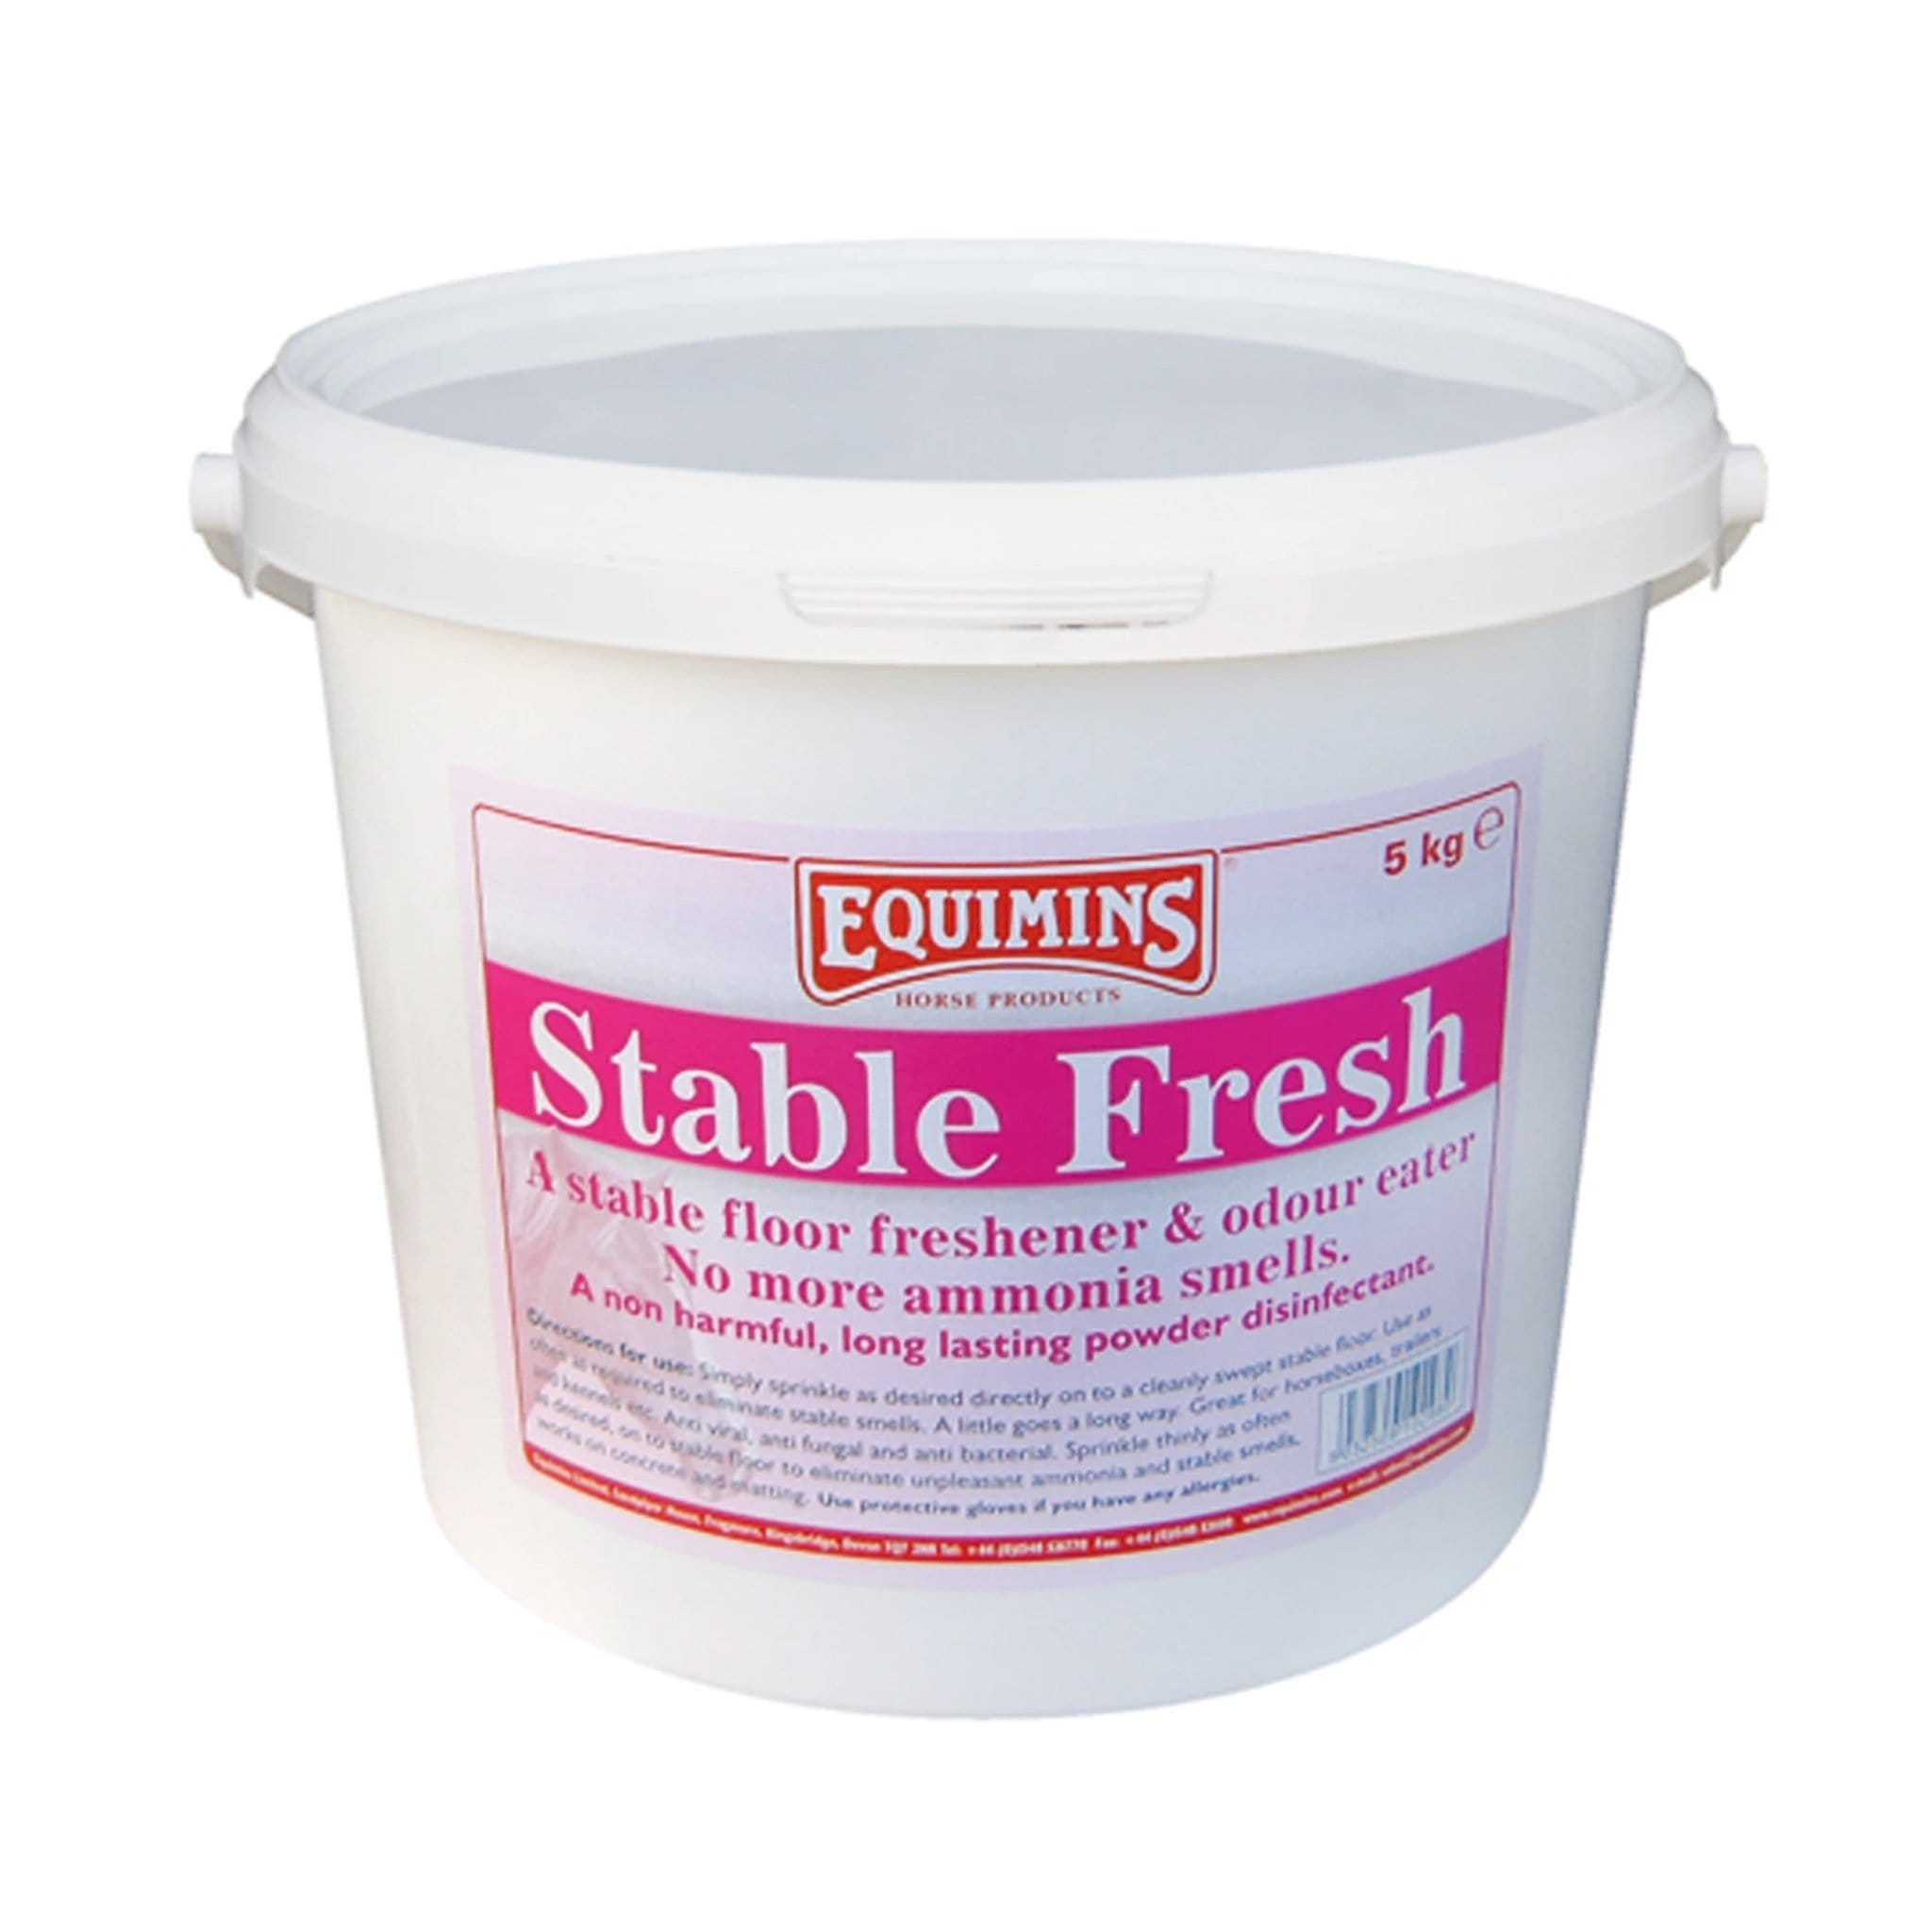 Equimins Stable Fresh Powder Disinfectant EQS10000 5 Kilogram Tub.